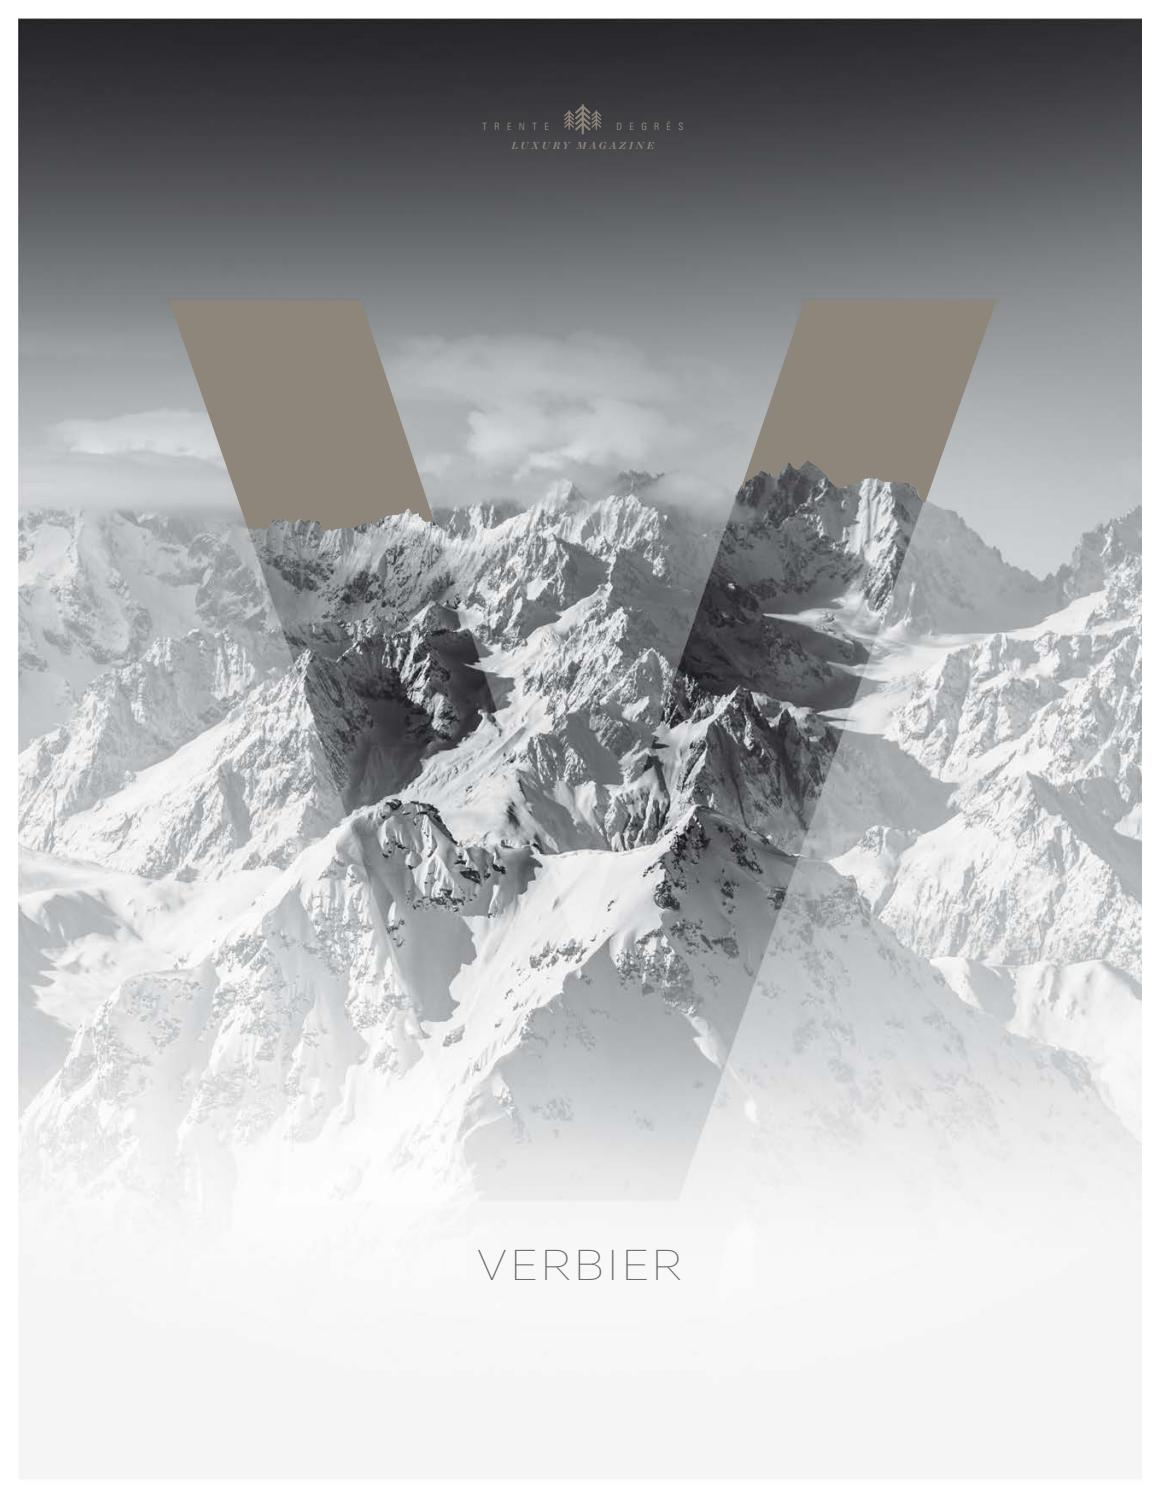 Bottle Notes Atd As Aubade With >> Special Issue 30 Luxe Verbier 2016 2017 By Christian Bugnon Issuu